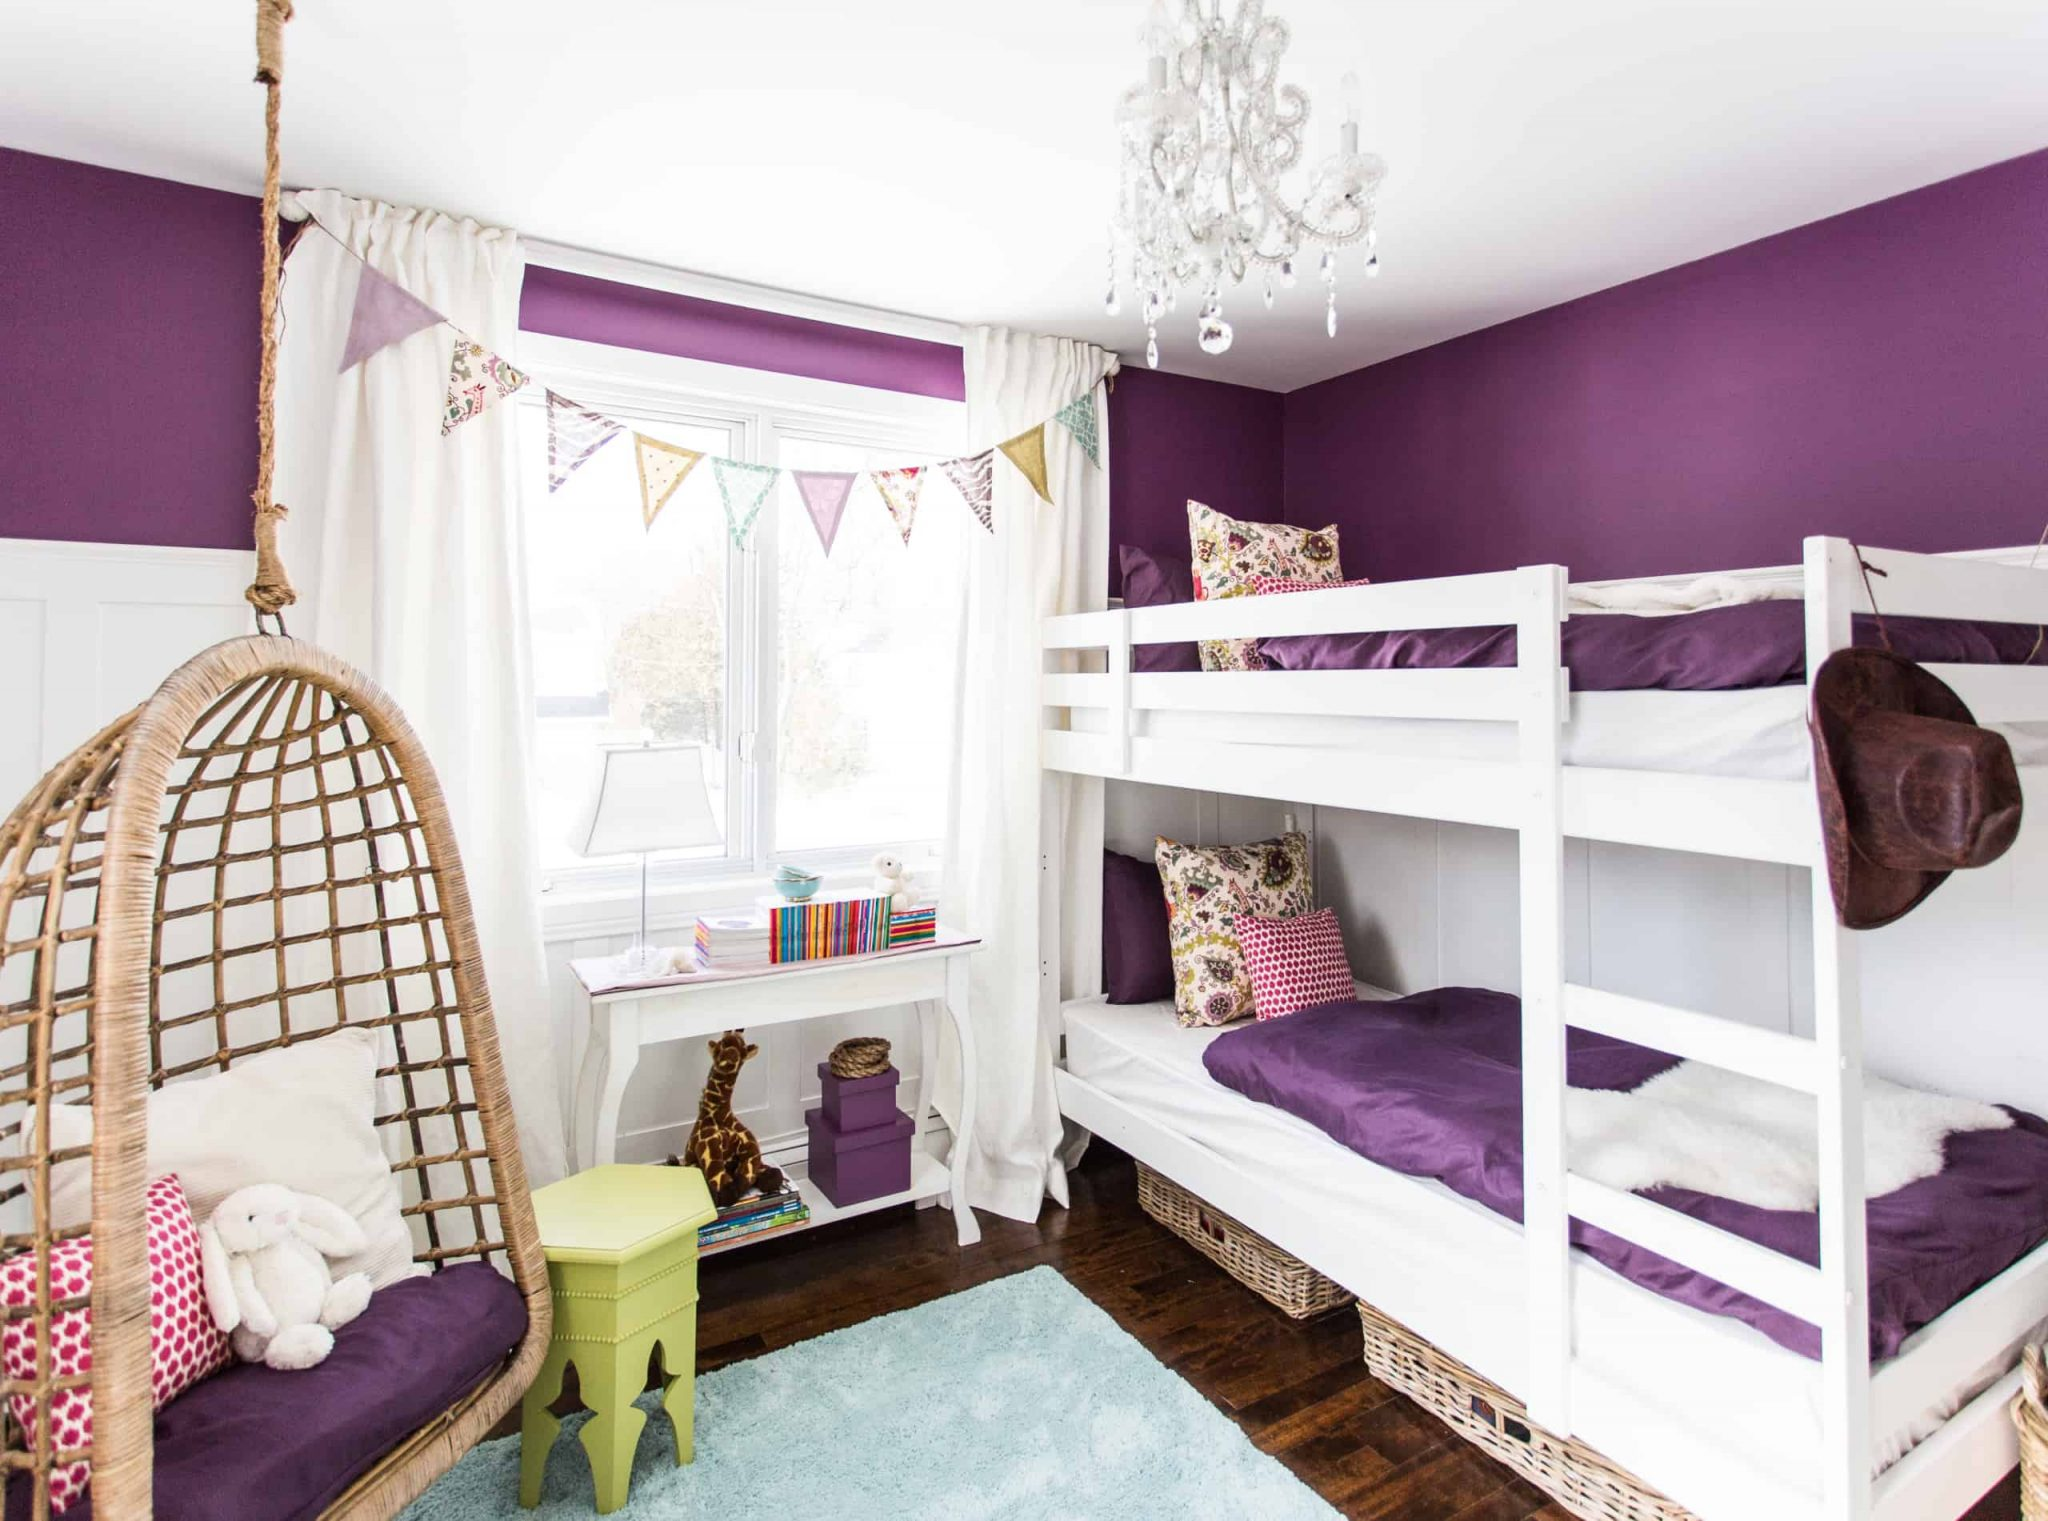 White and purple bunk beds inside a purple themed bedroom